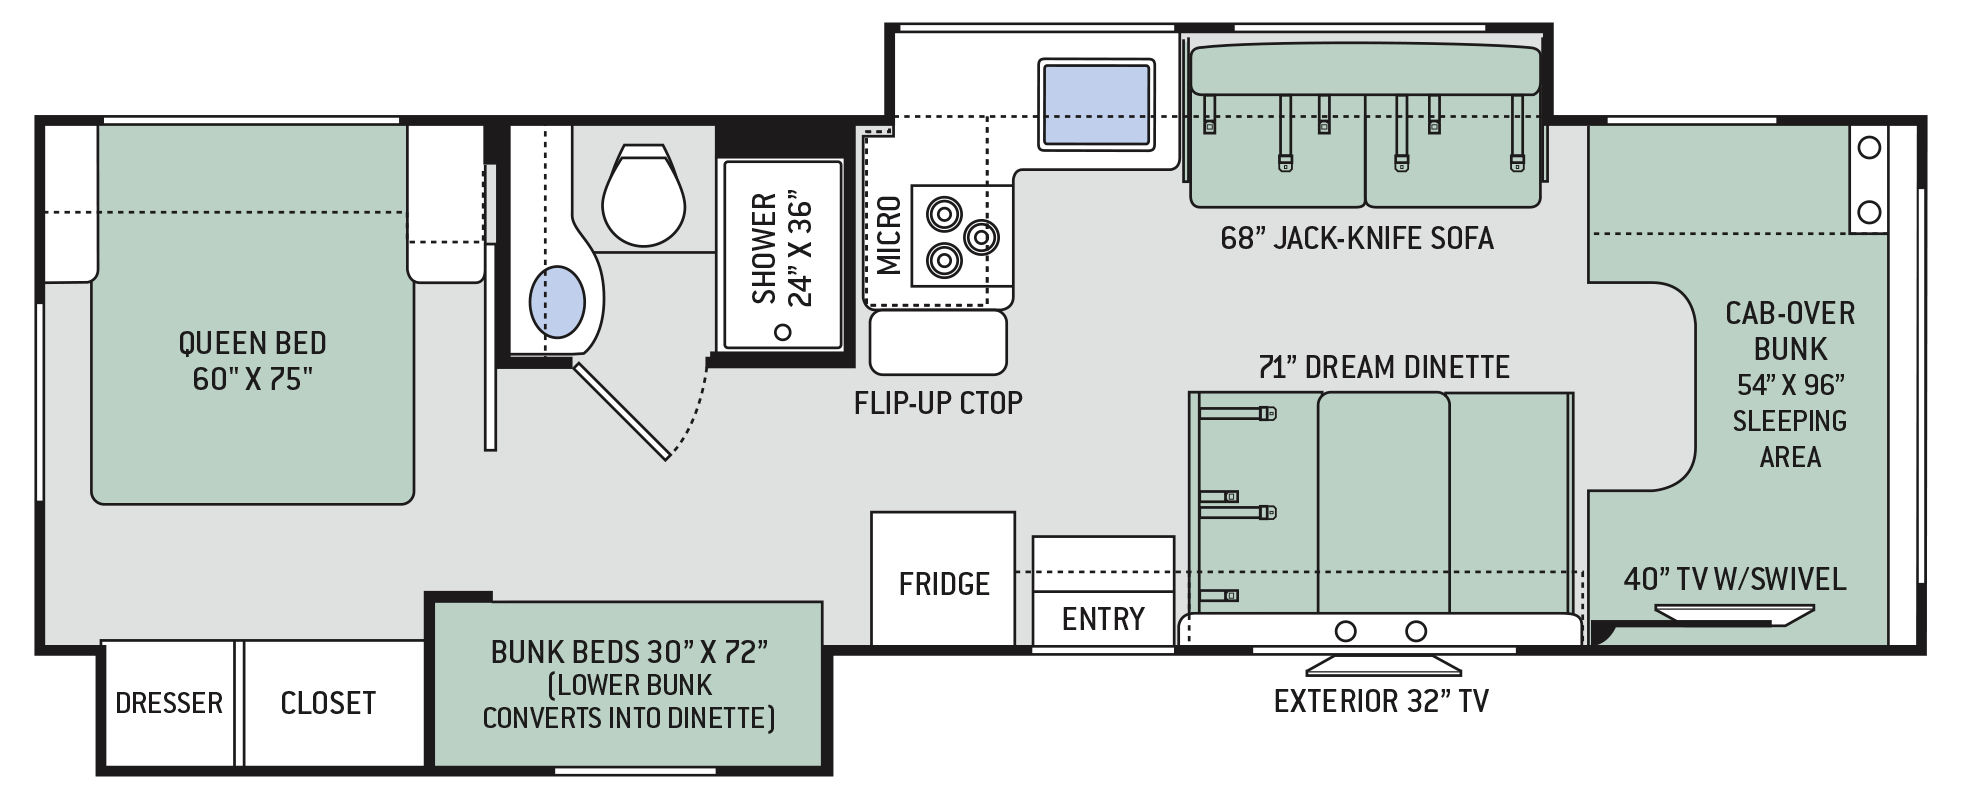 Freedom Elite Class C Motorhomes Floor Plan 30fe Thor Motor Coach Rv Wiring Schematics